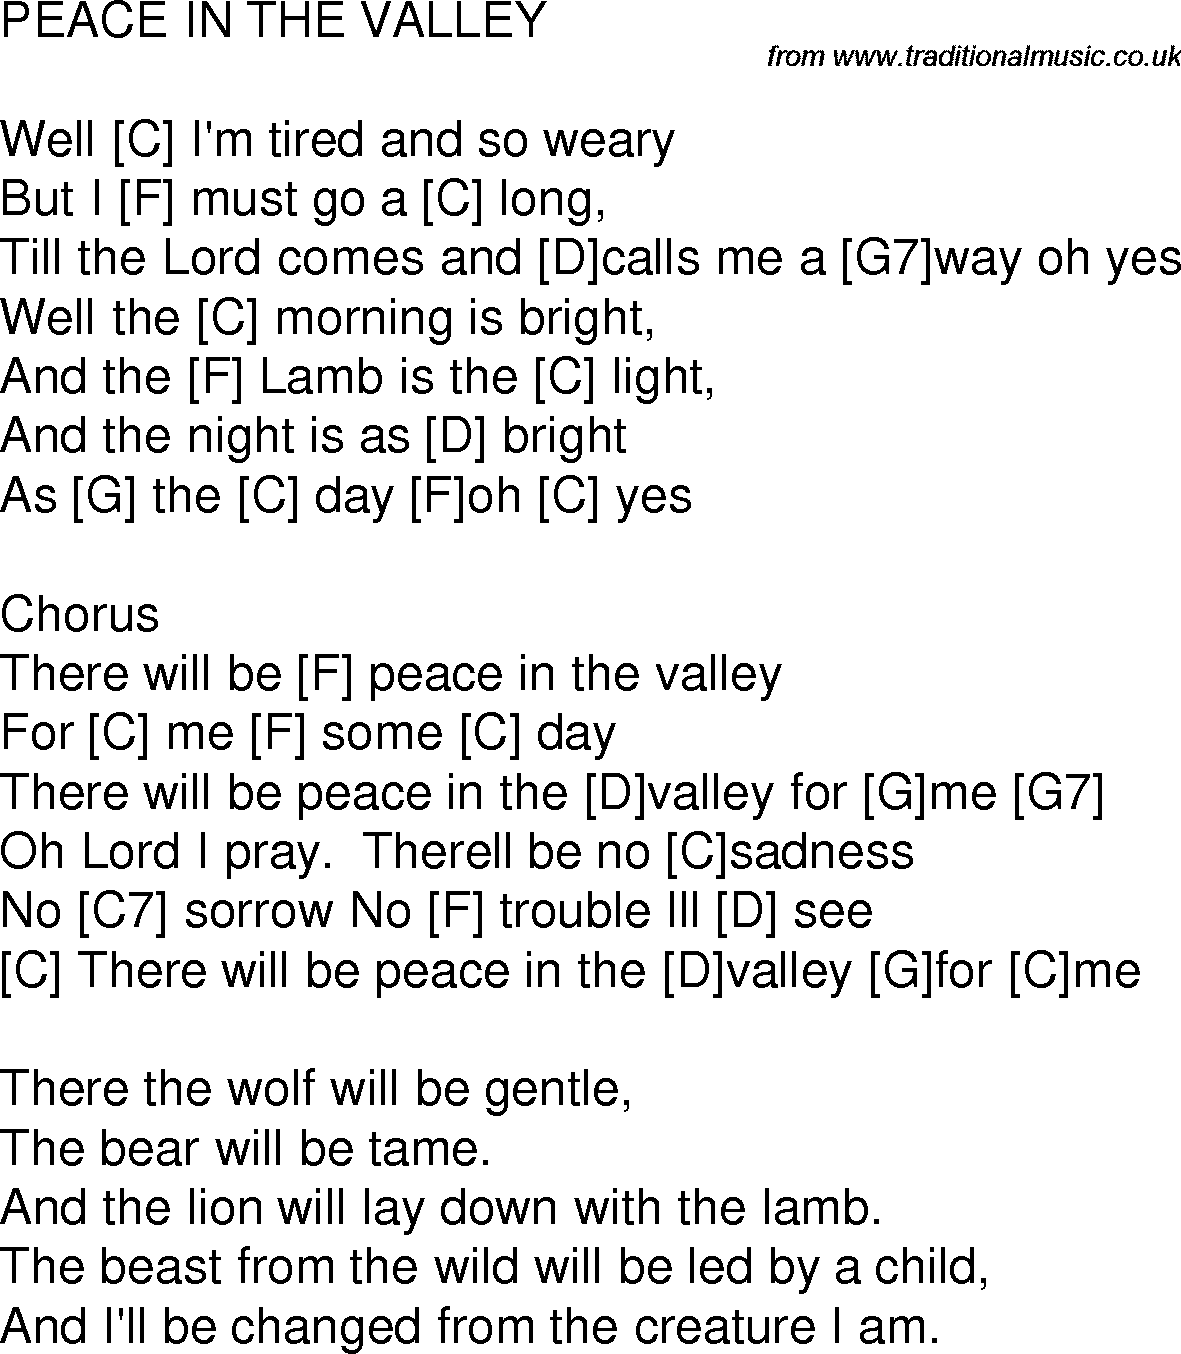 Old Time Song Lyrics With Chords For Peace In The Valley C Guitar